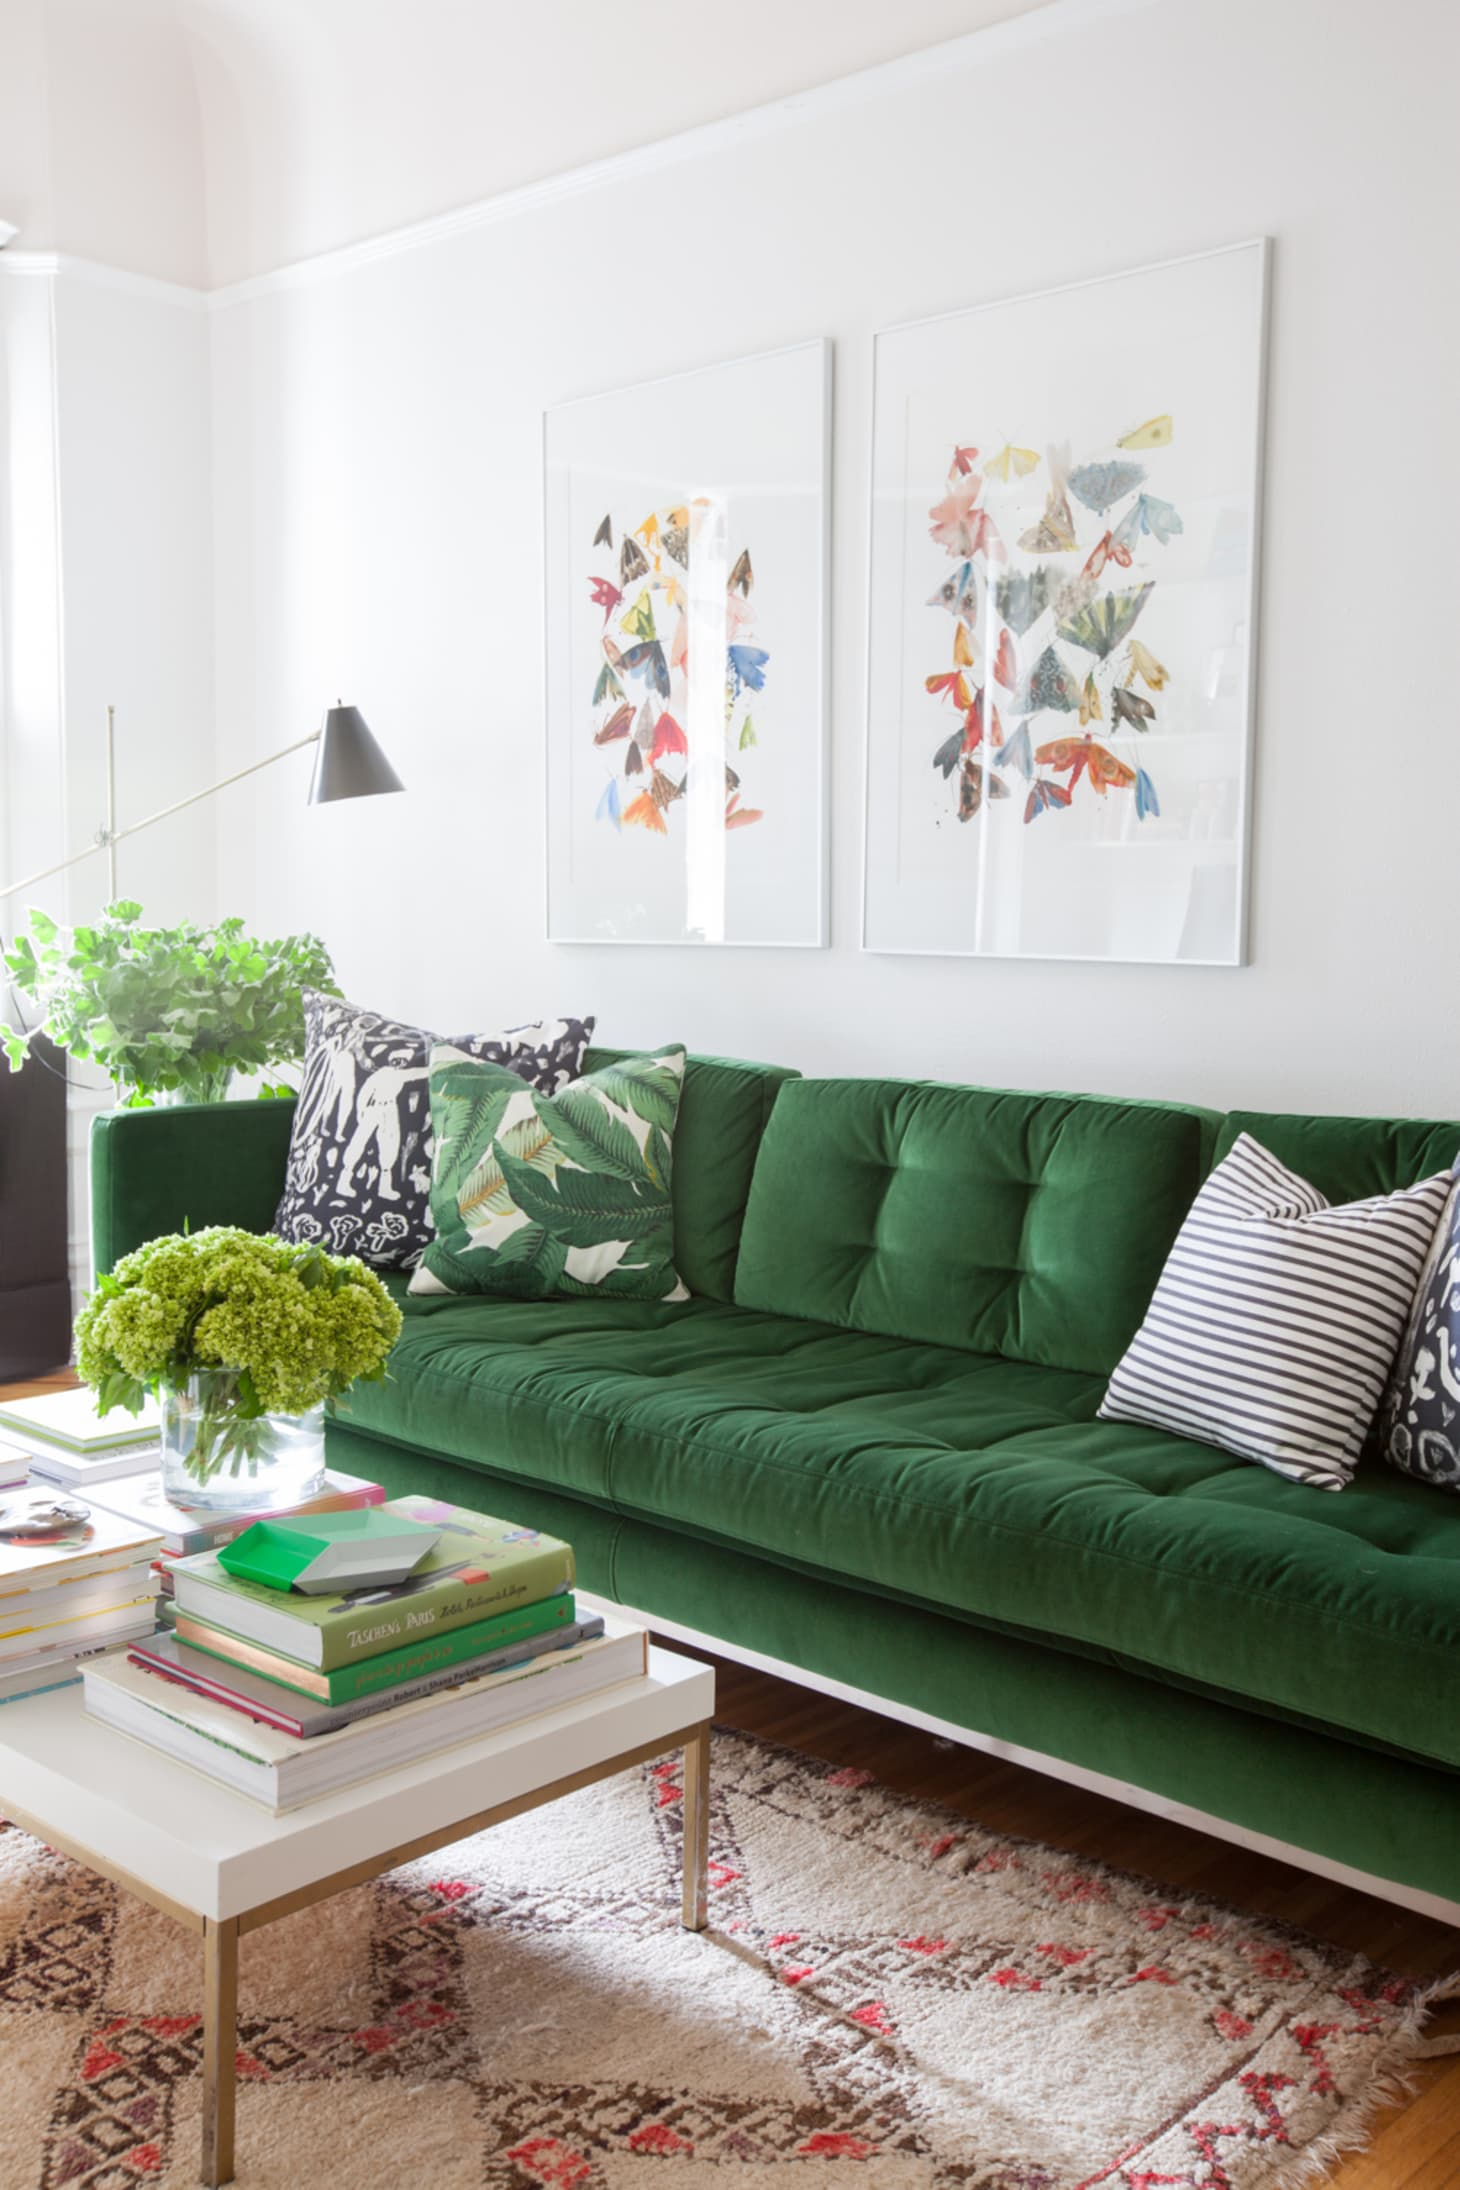 The Couch Trend for 2017: Stylish Emerald Green Sofas | Apartment ...